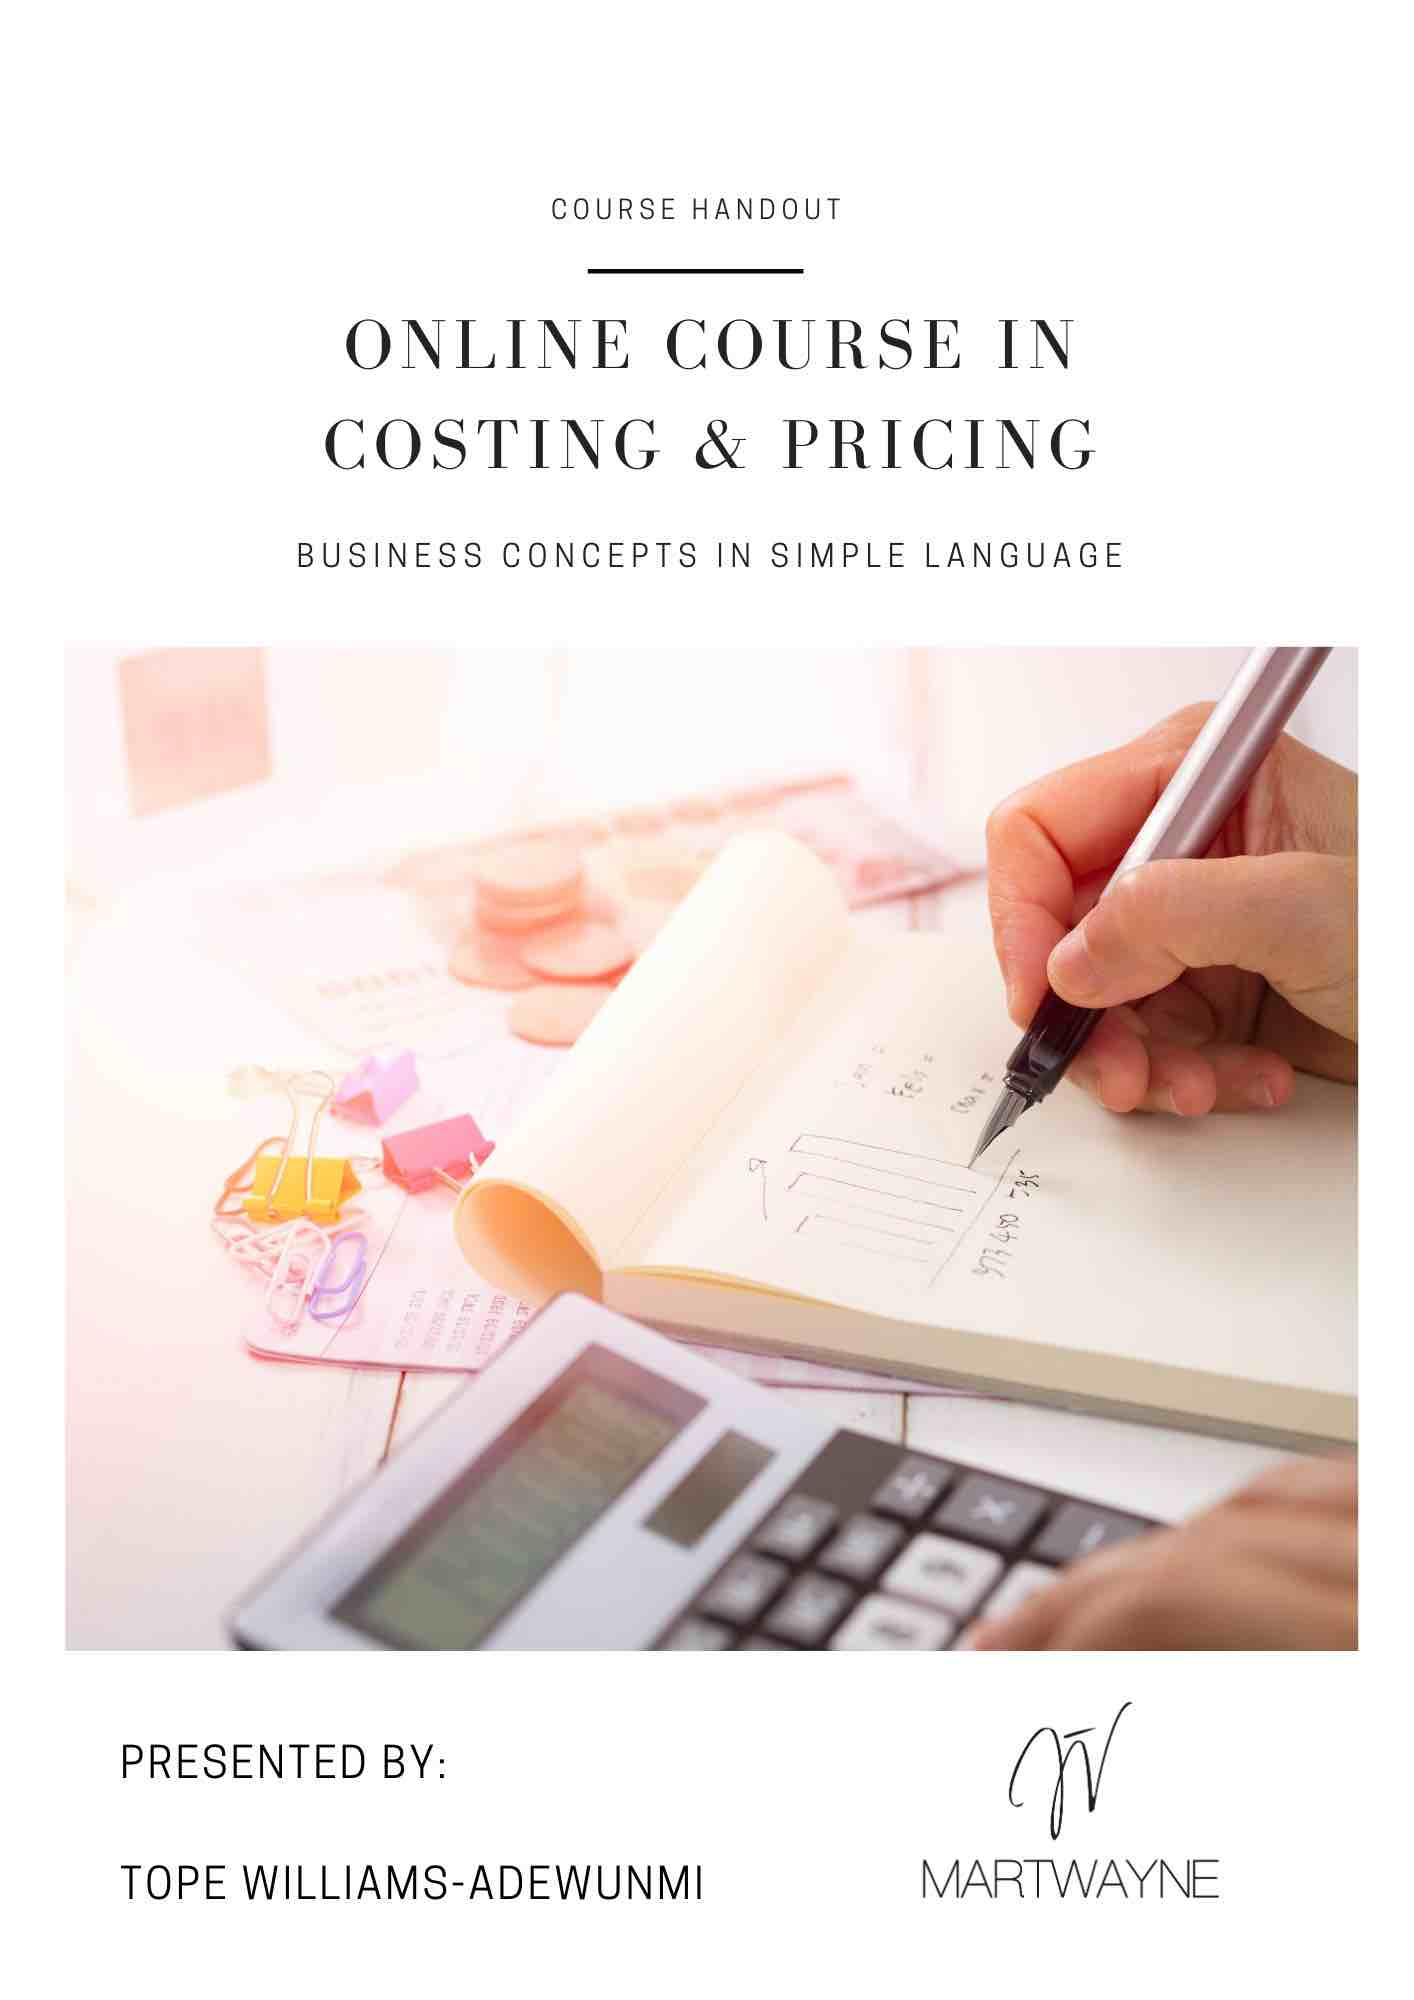 costing and pricing pdf handout